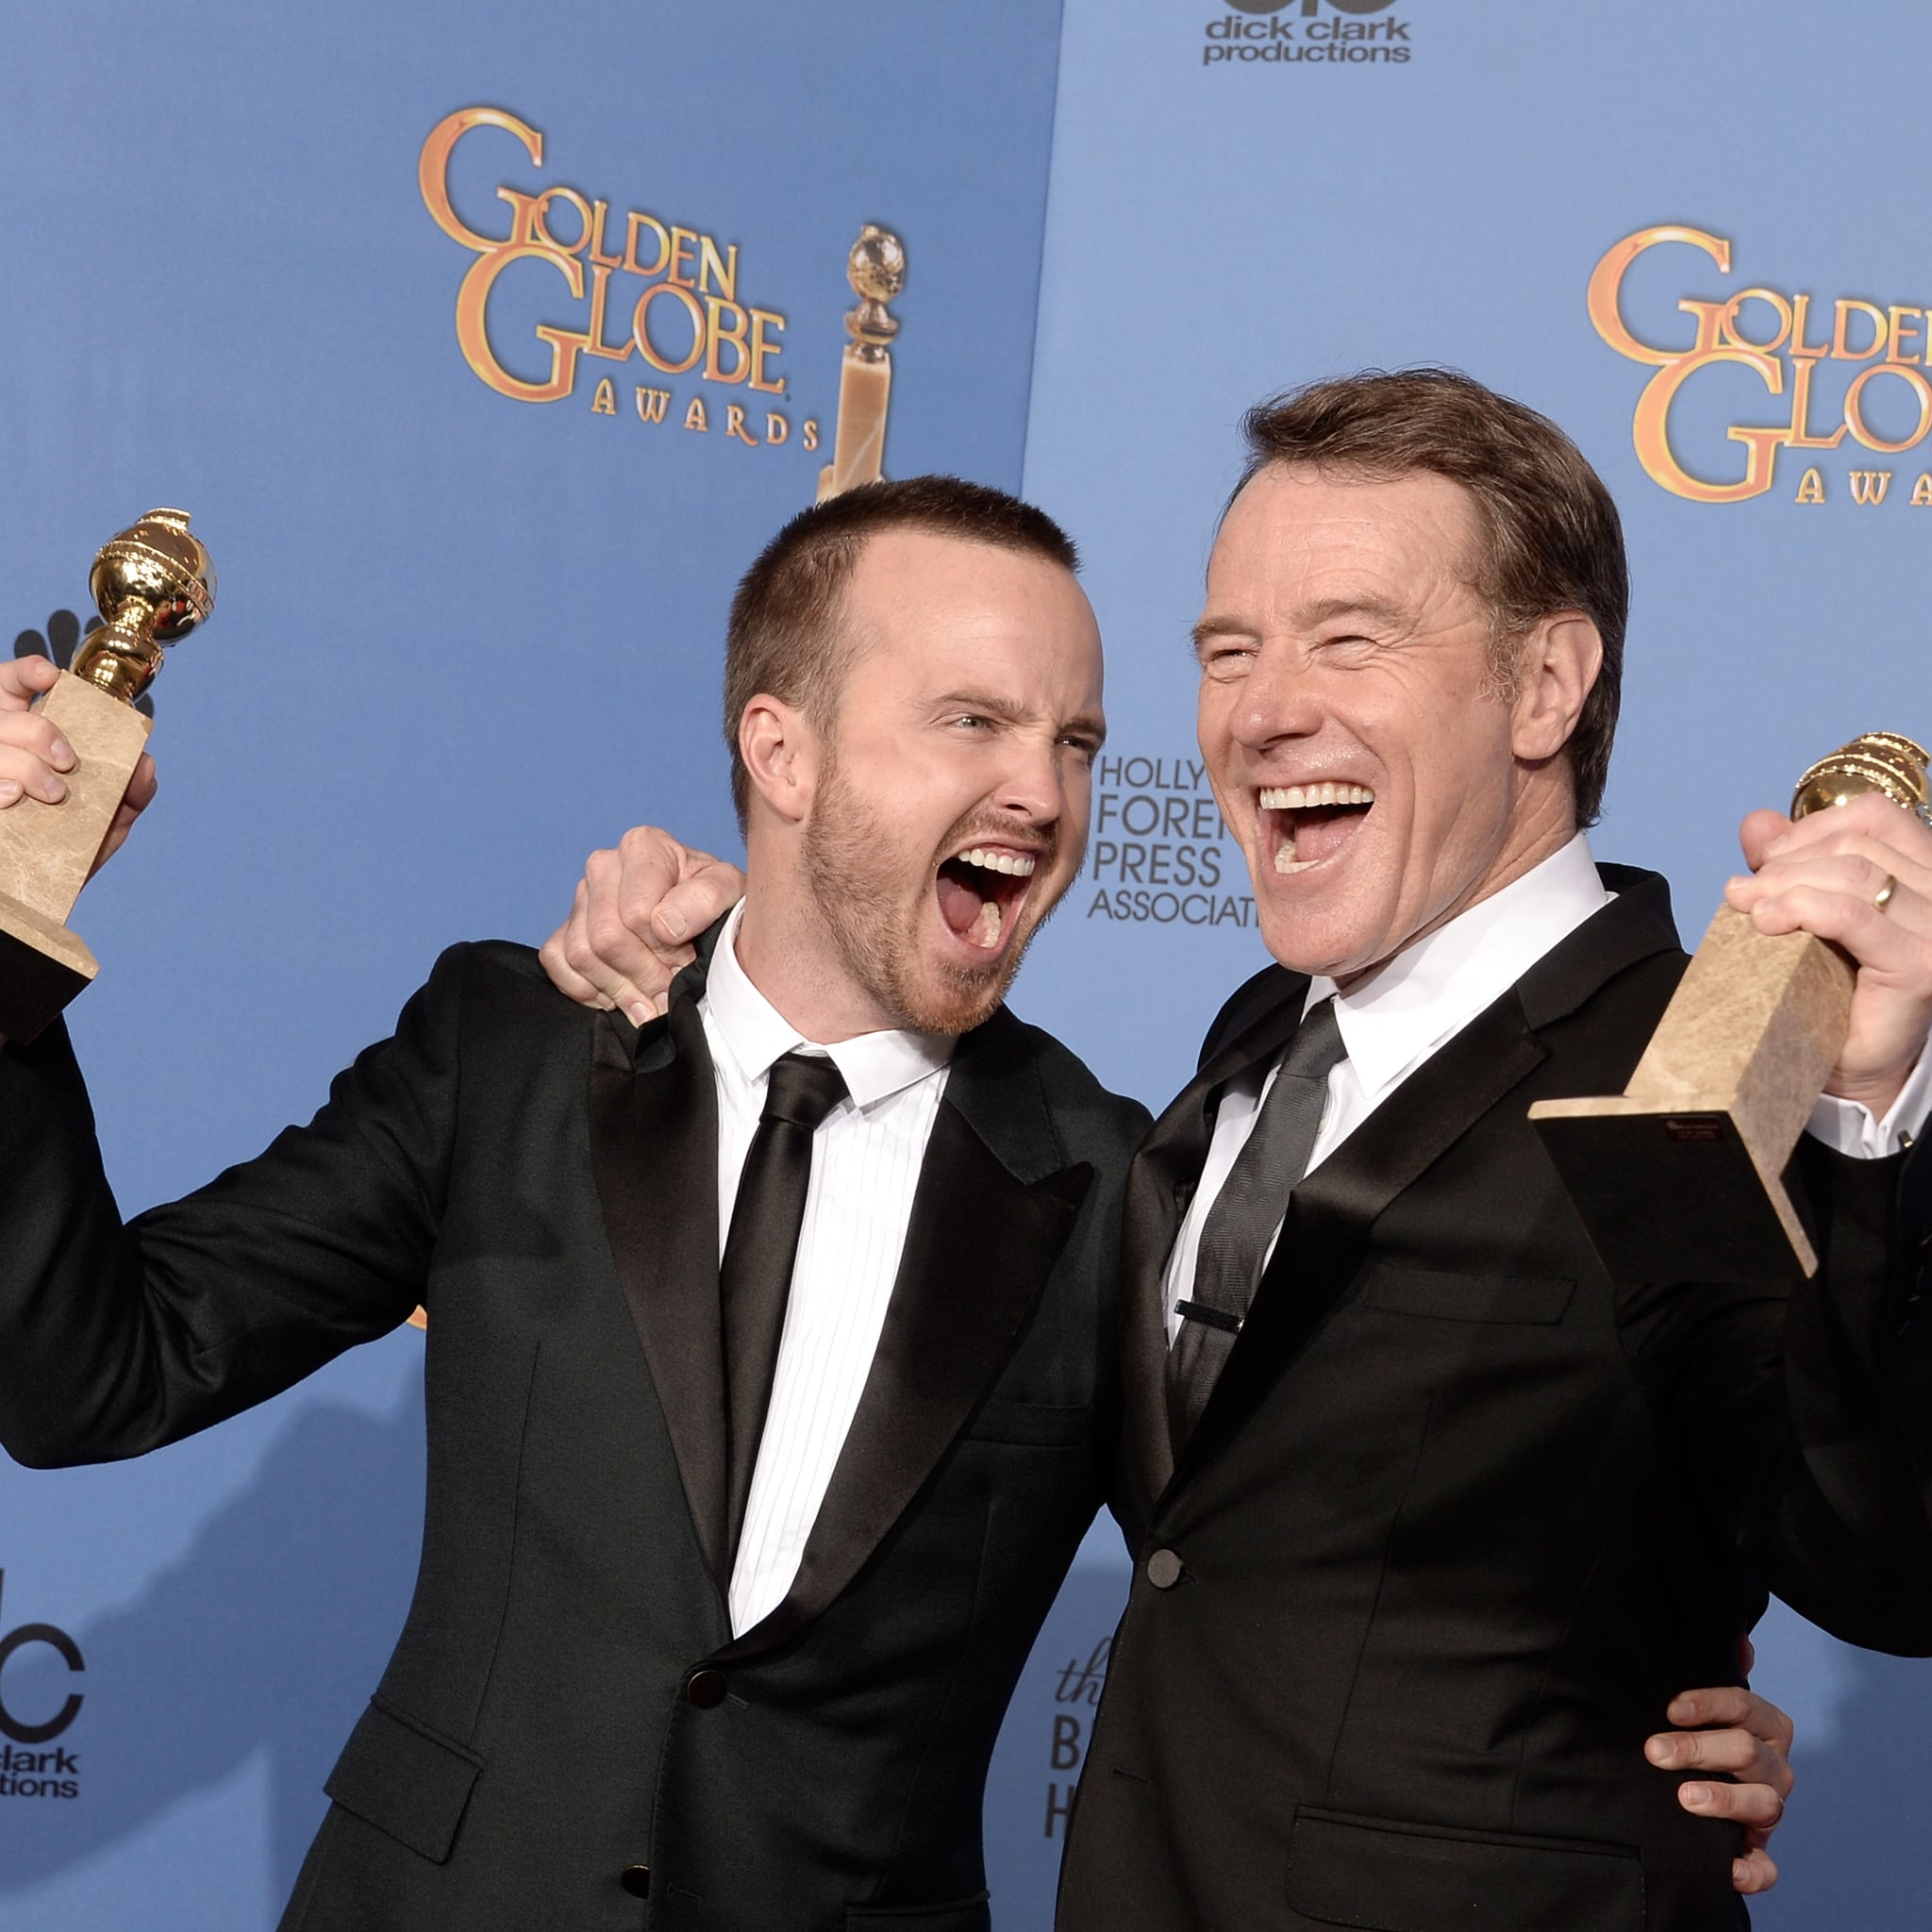 Bryan Cranston and Aaron Paul's Best Friendship Pictures | POPSUGAR Celebrity Australia